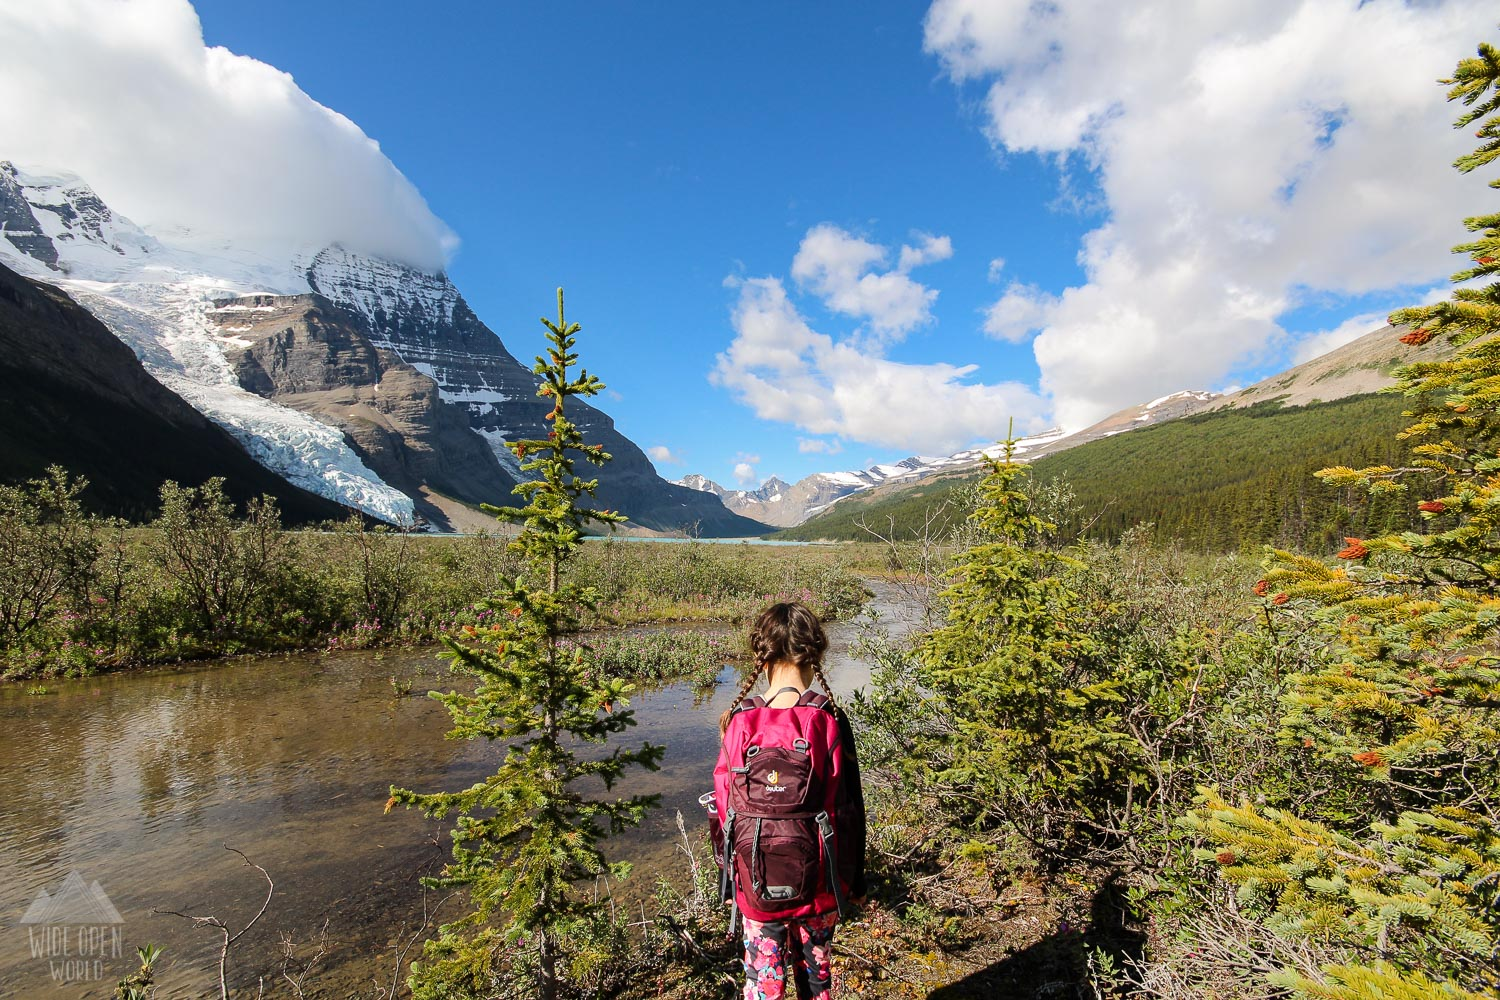 Hiking from Robson Meadows to Berg Lake.